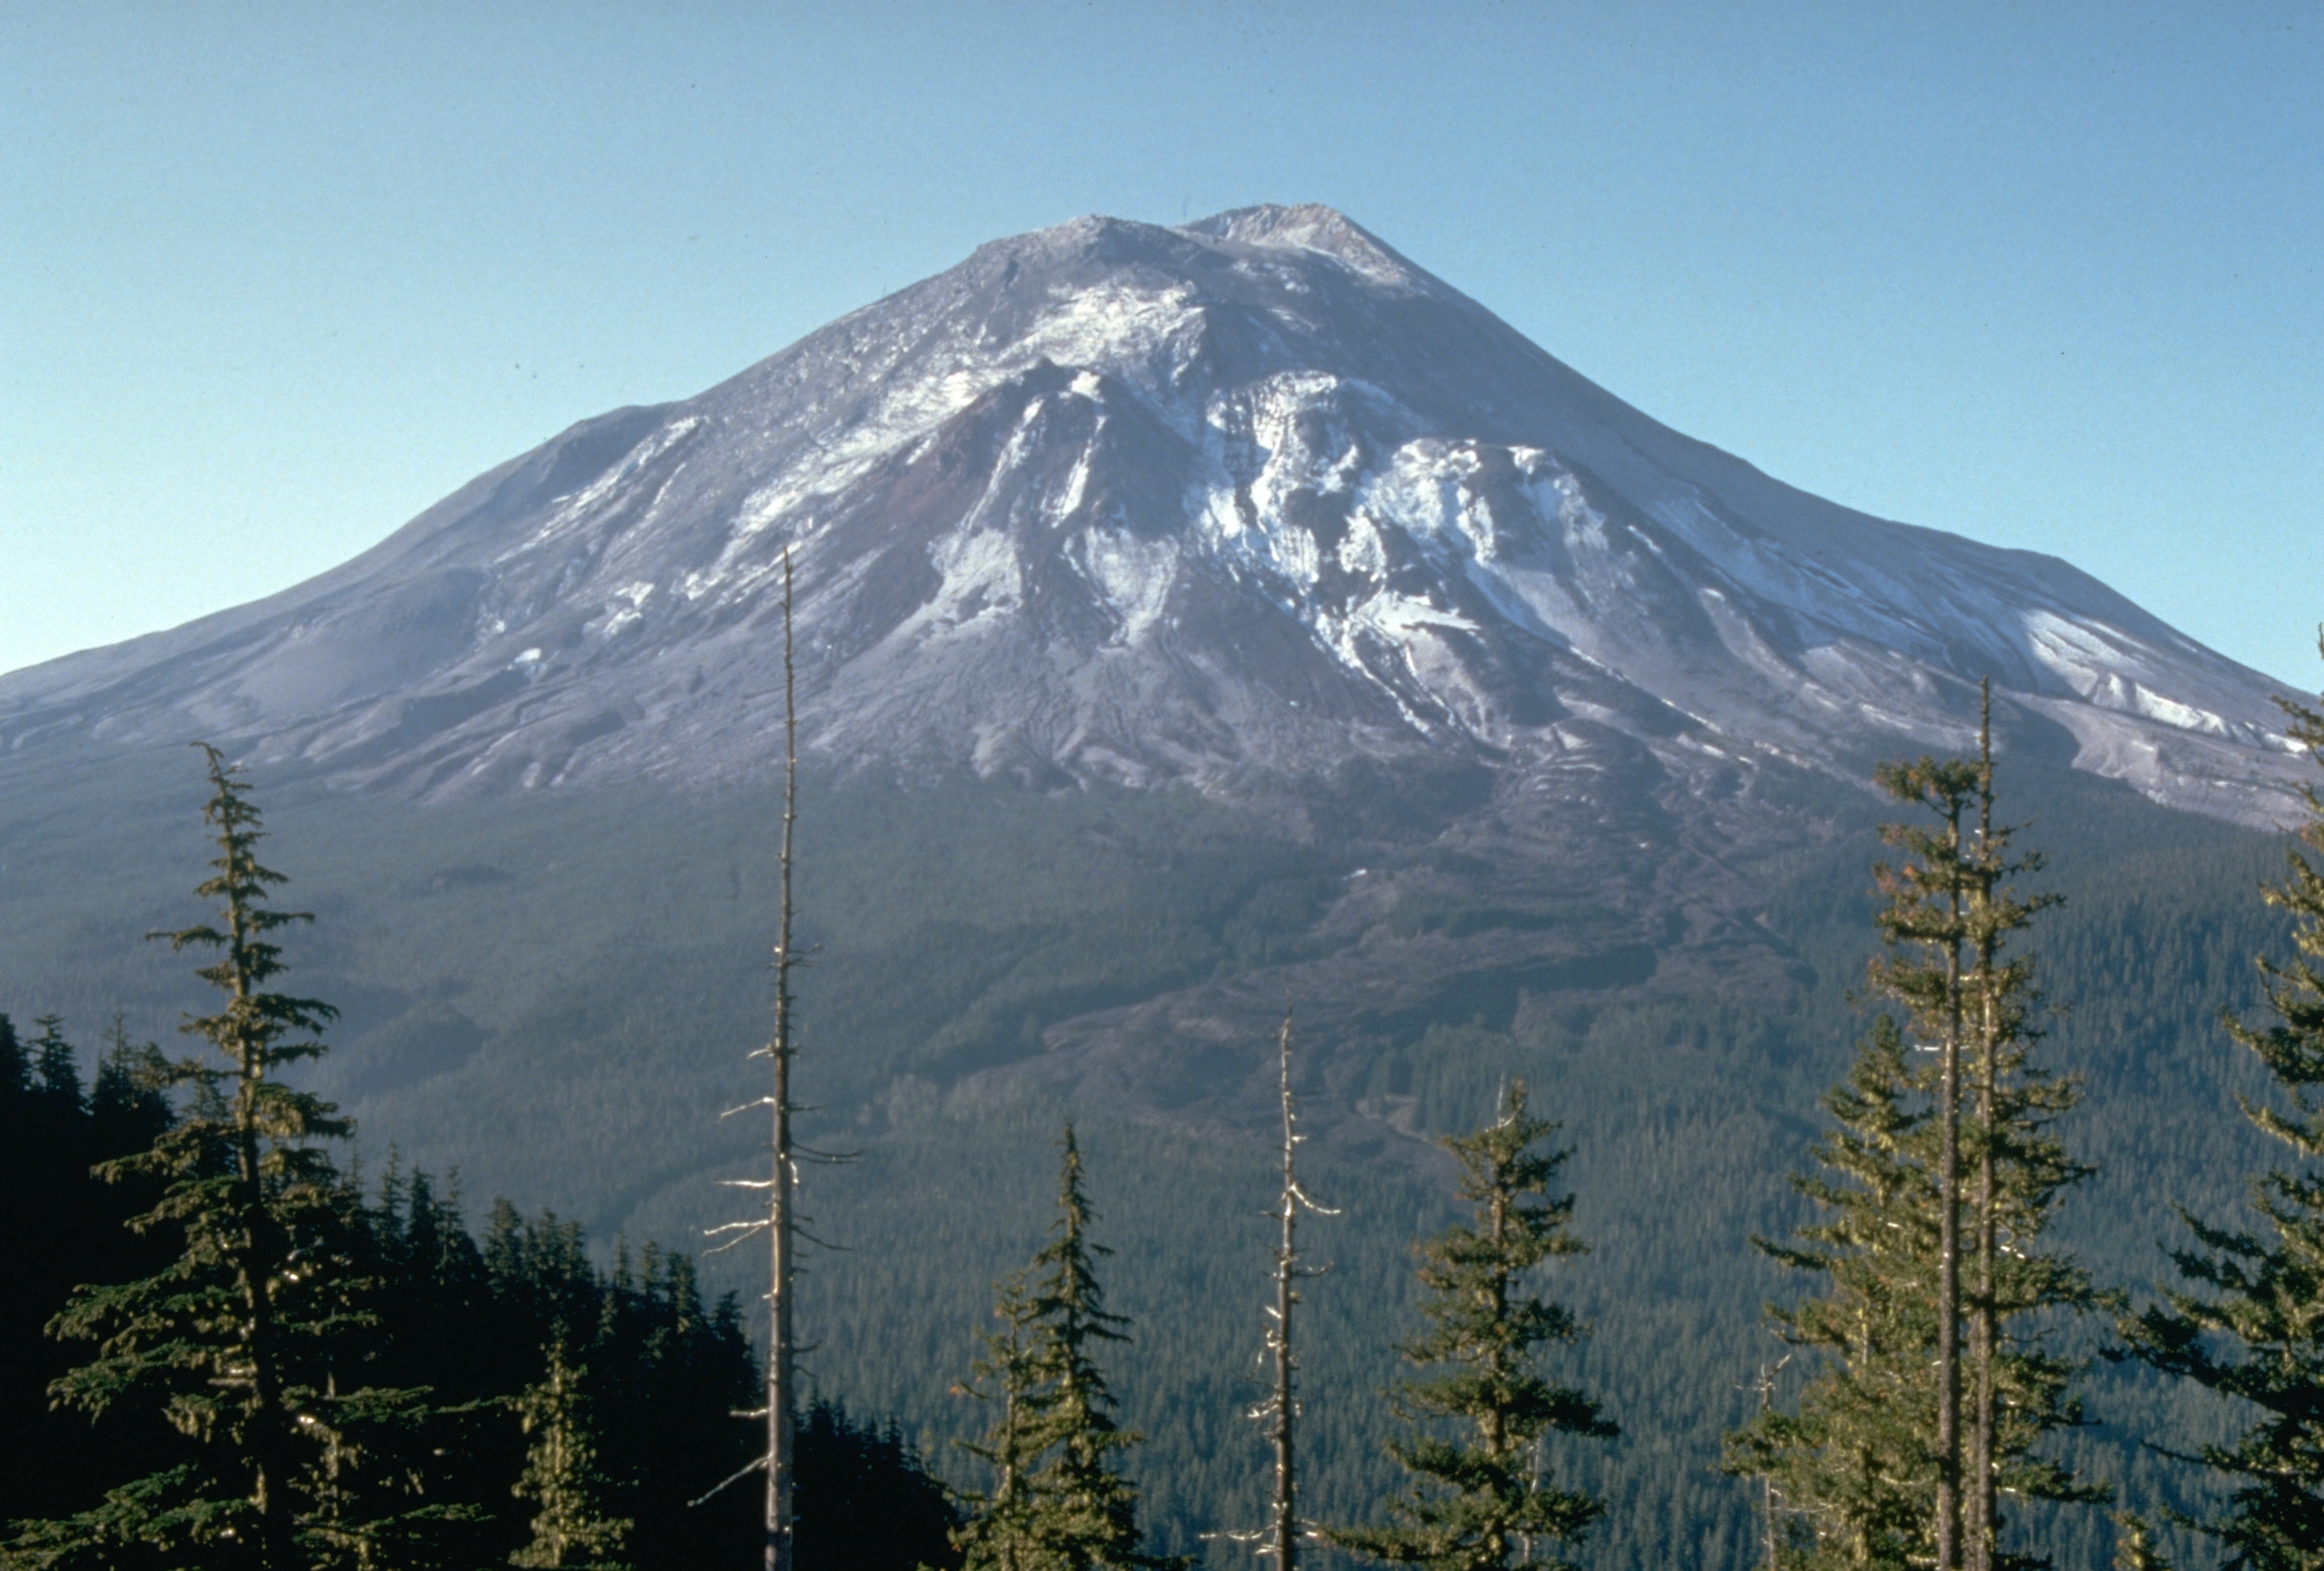 Mount Saint Helens radiometric dating